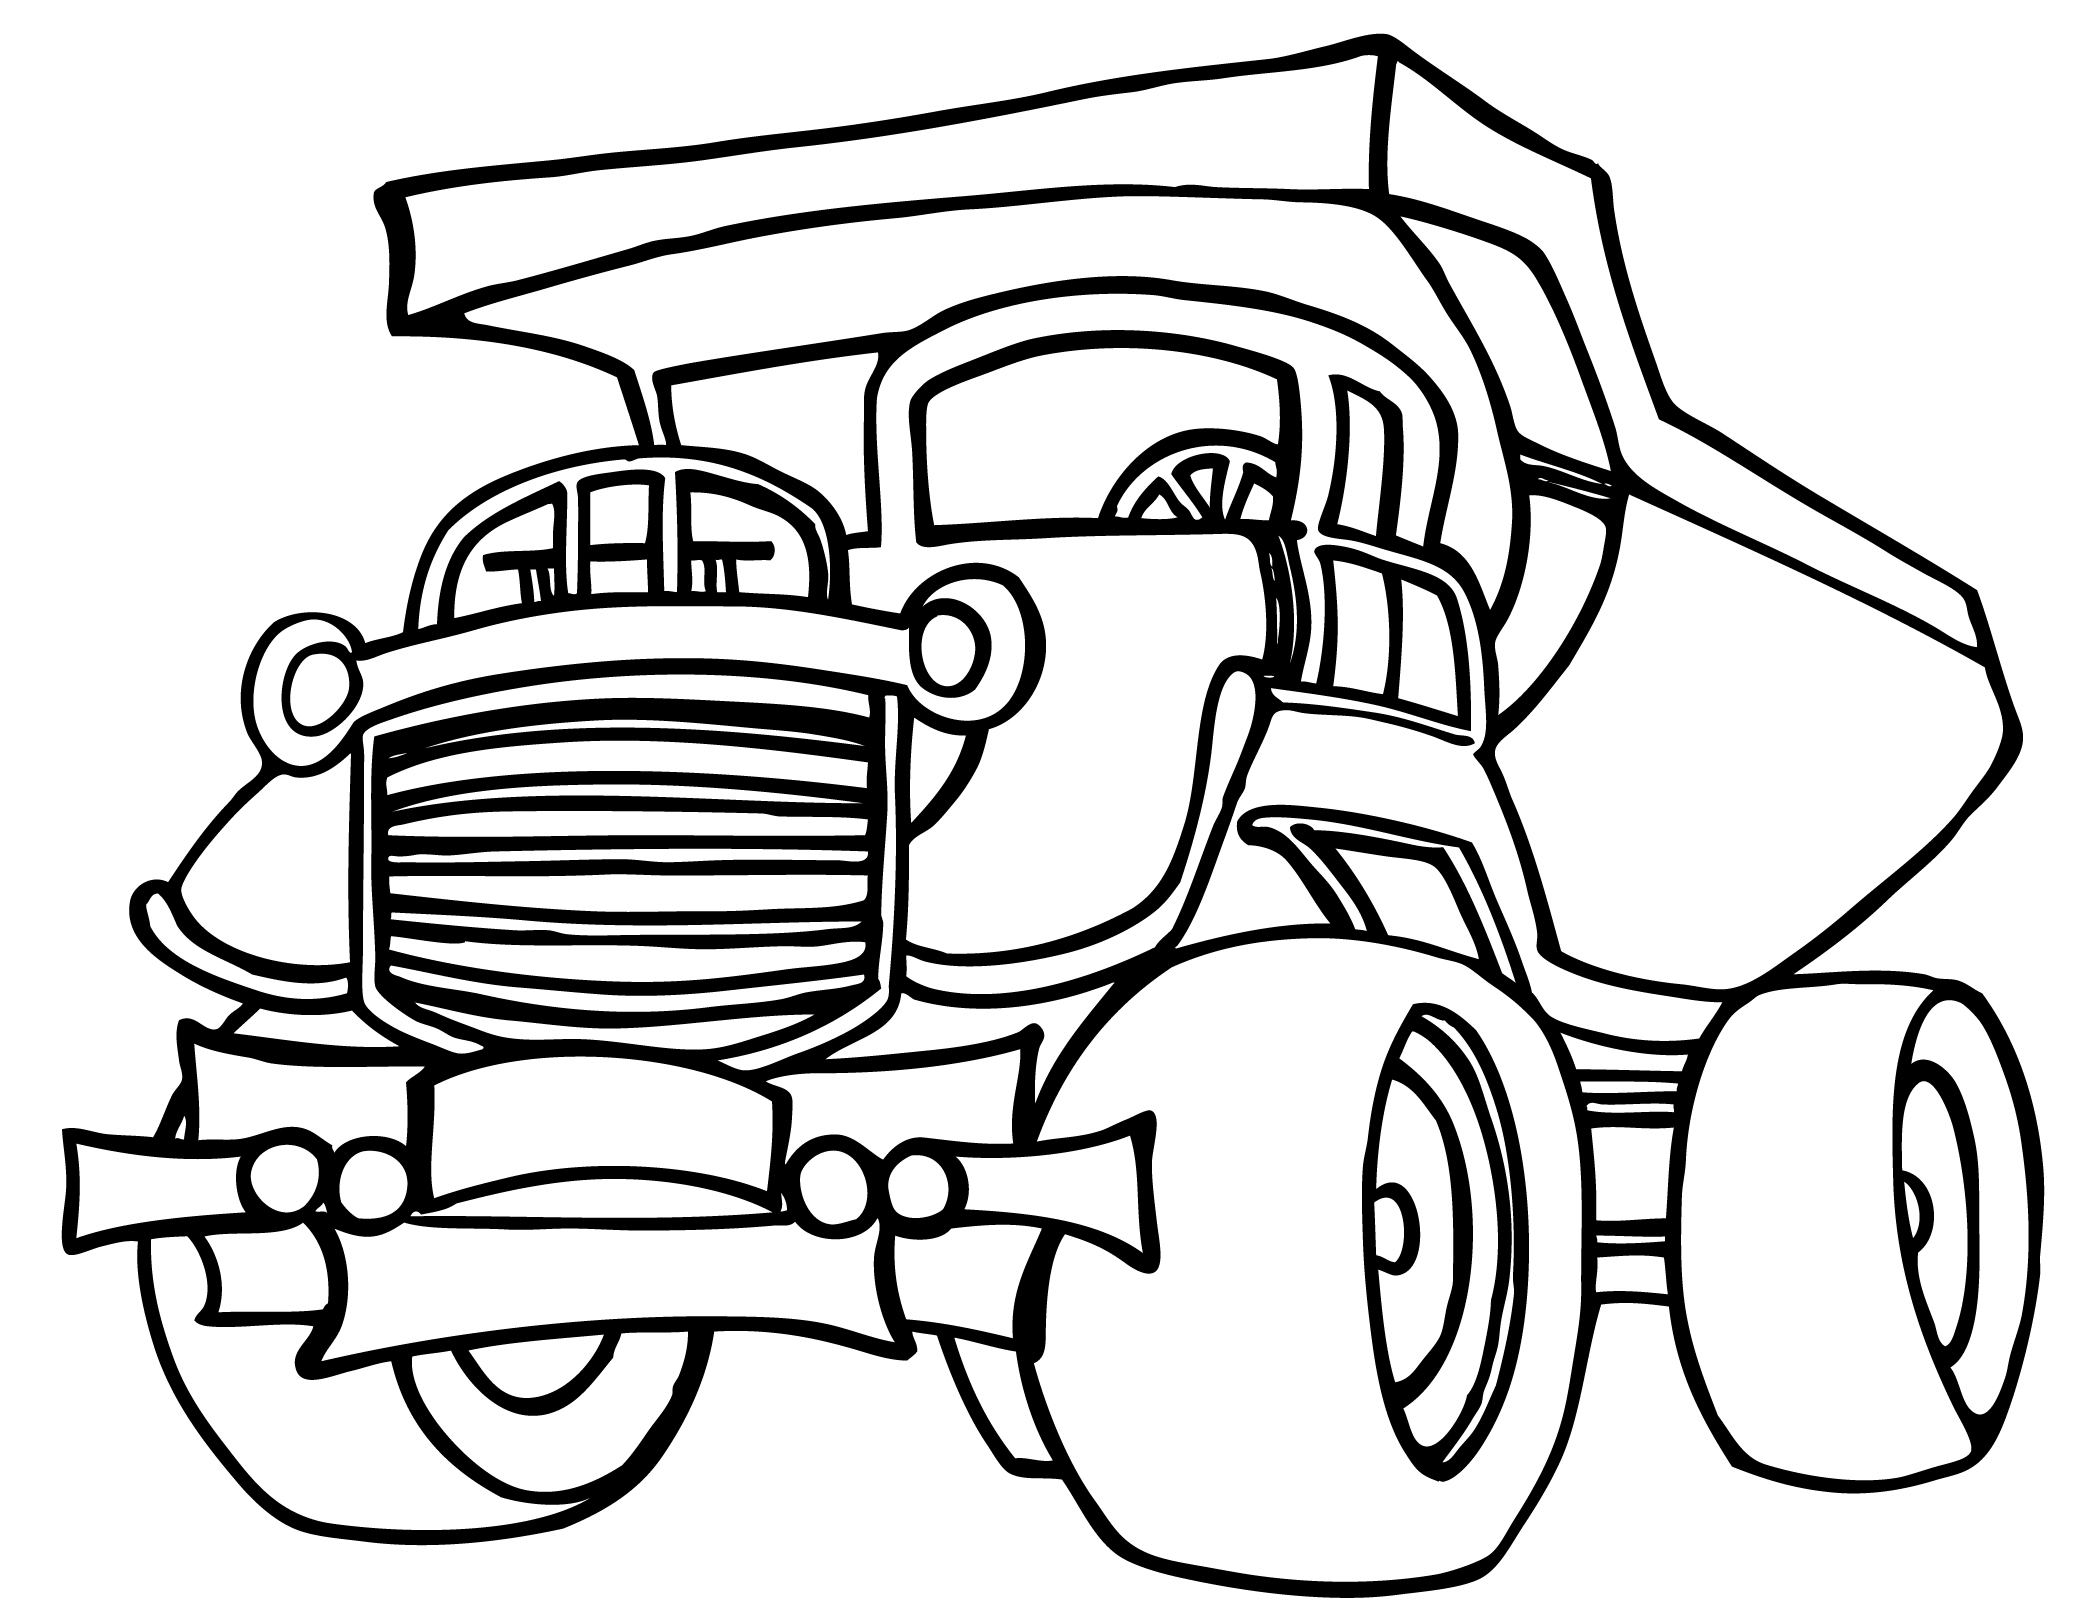 Dump truck coloring pages to download and print for free for Free truck coloring pages